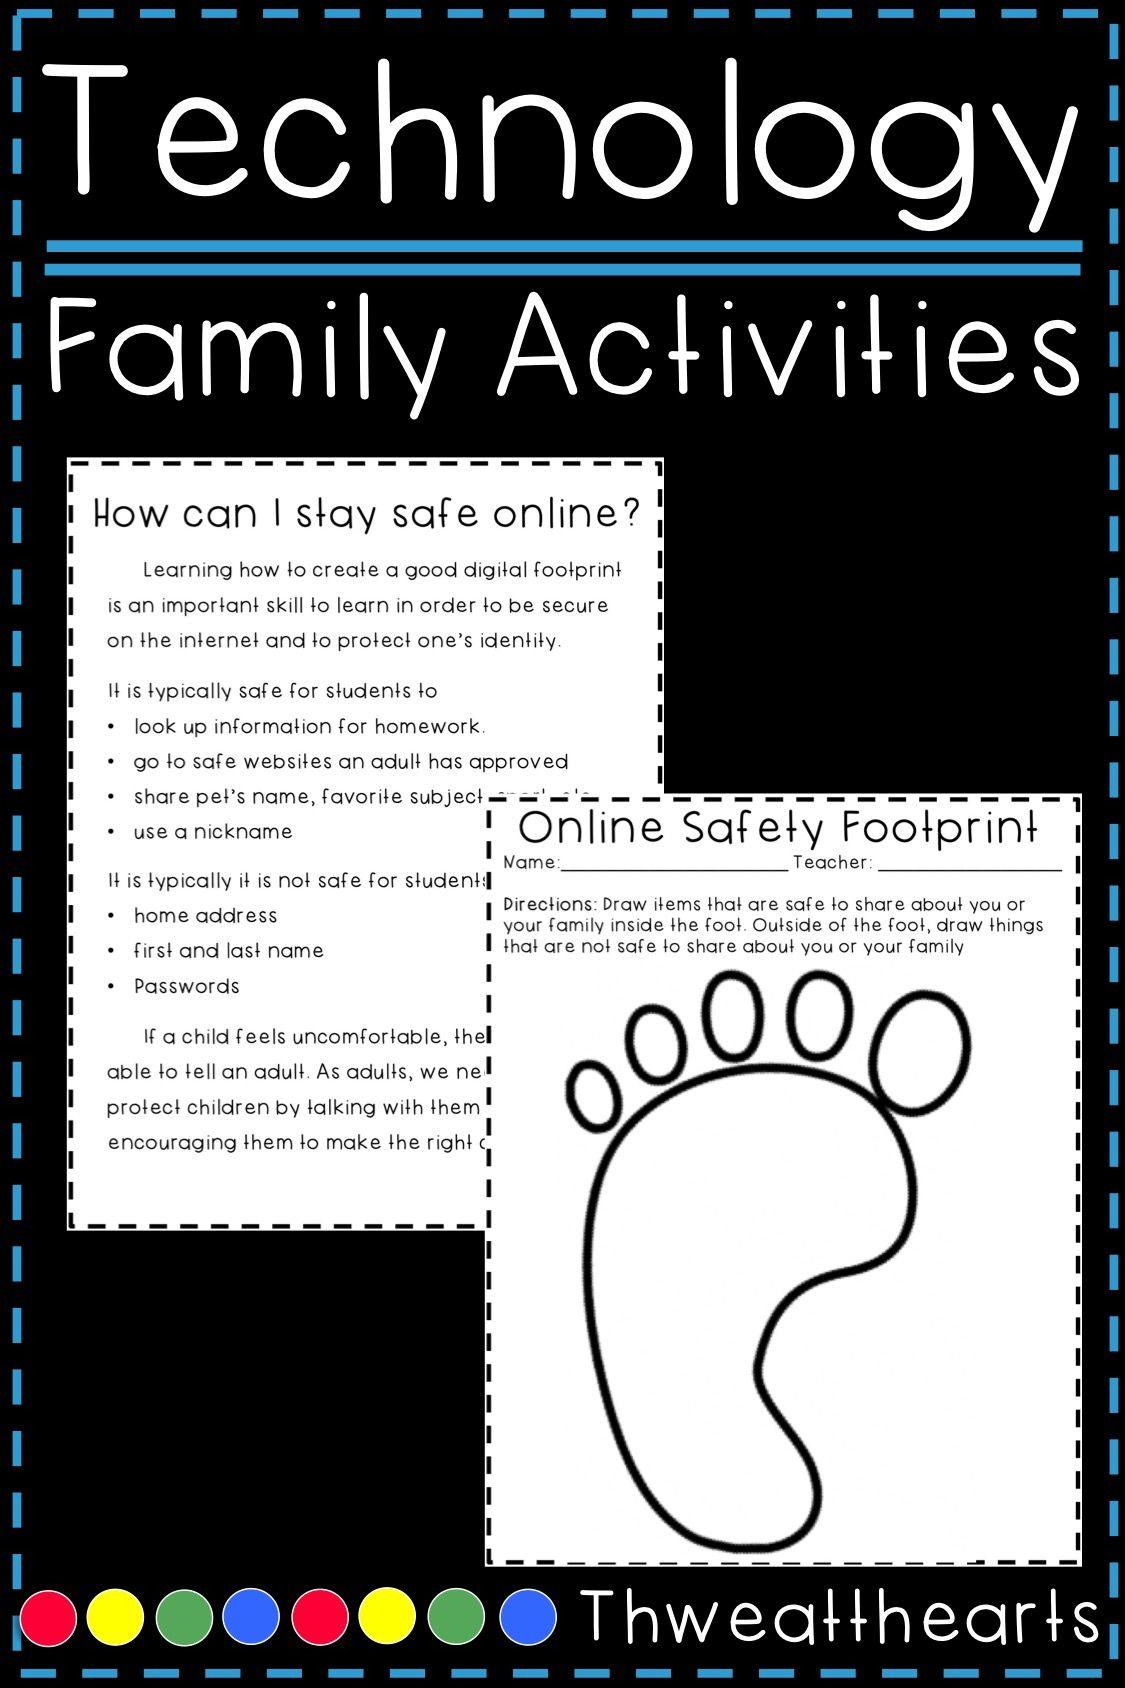 Technology Family Activities